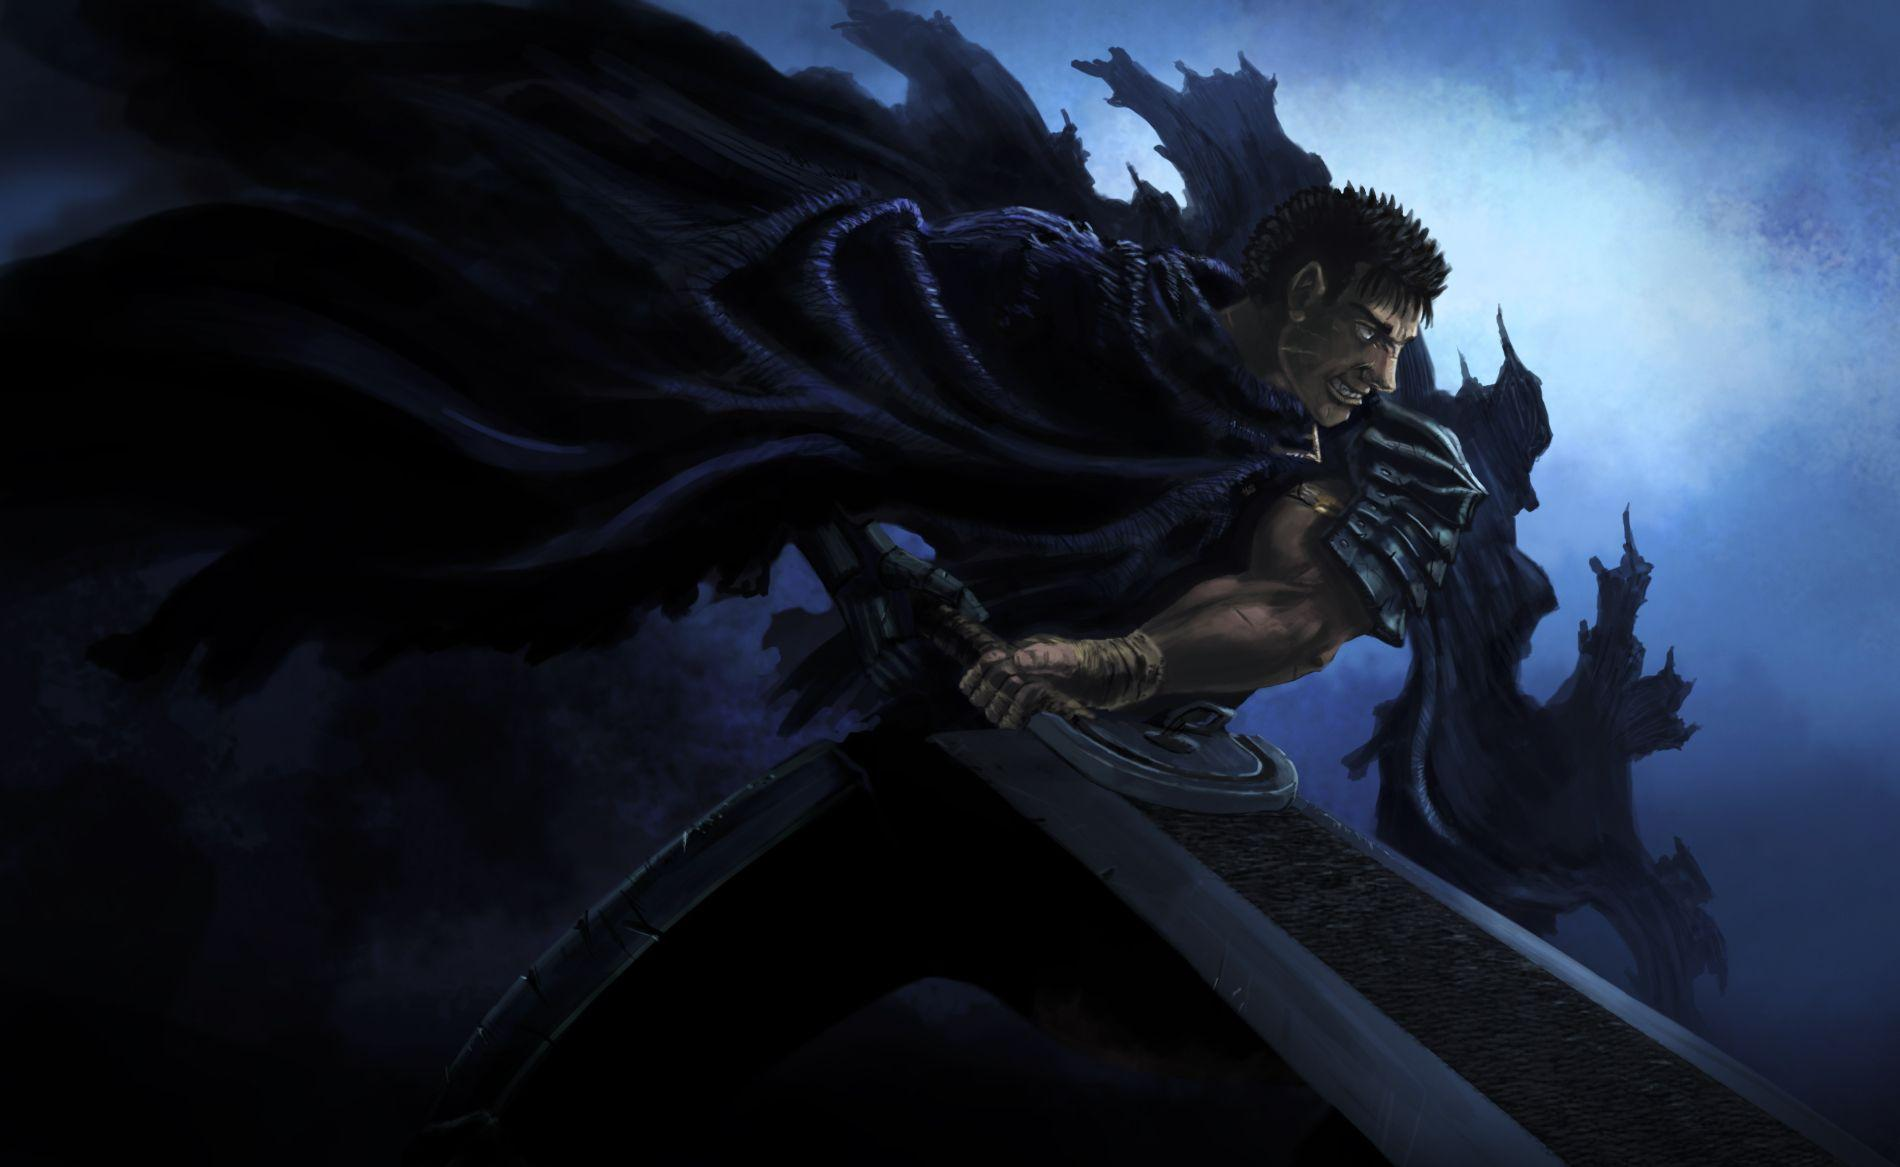 Berserk Armor Wallpaper Hd Best Wallpapers Cloud